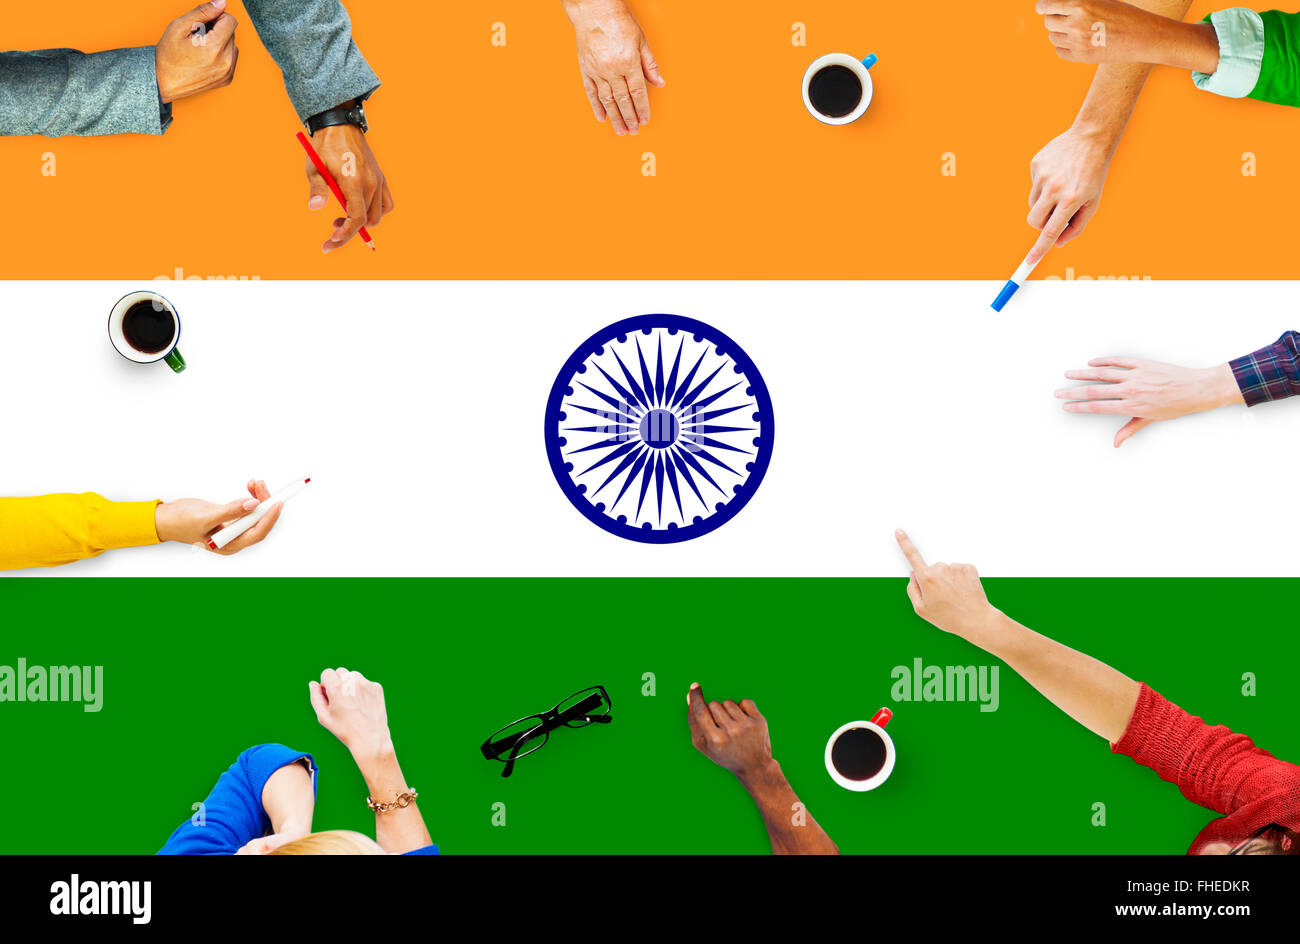 india flag concept stock photos u0026 india flag concept stock images